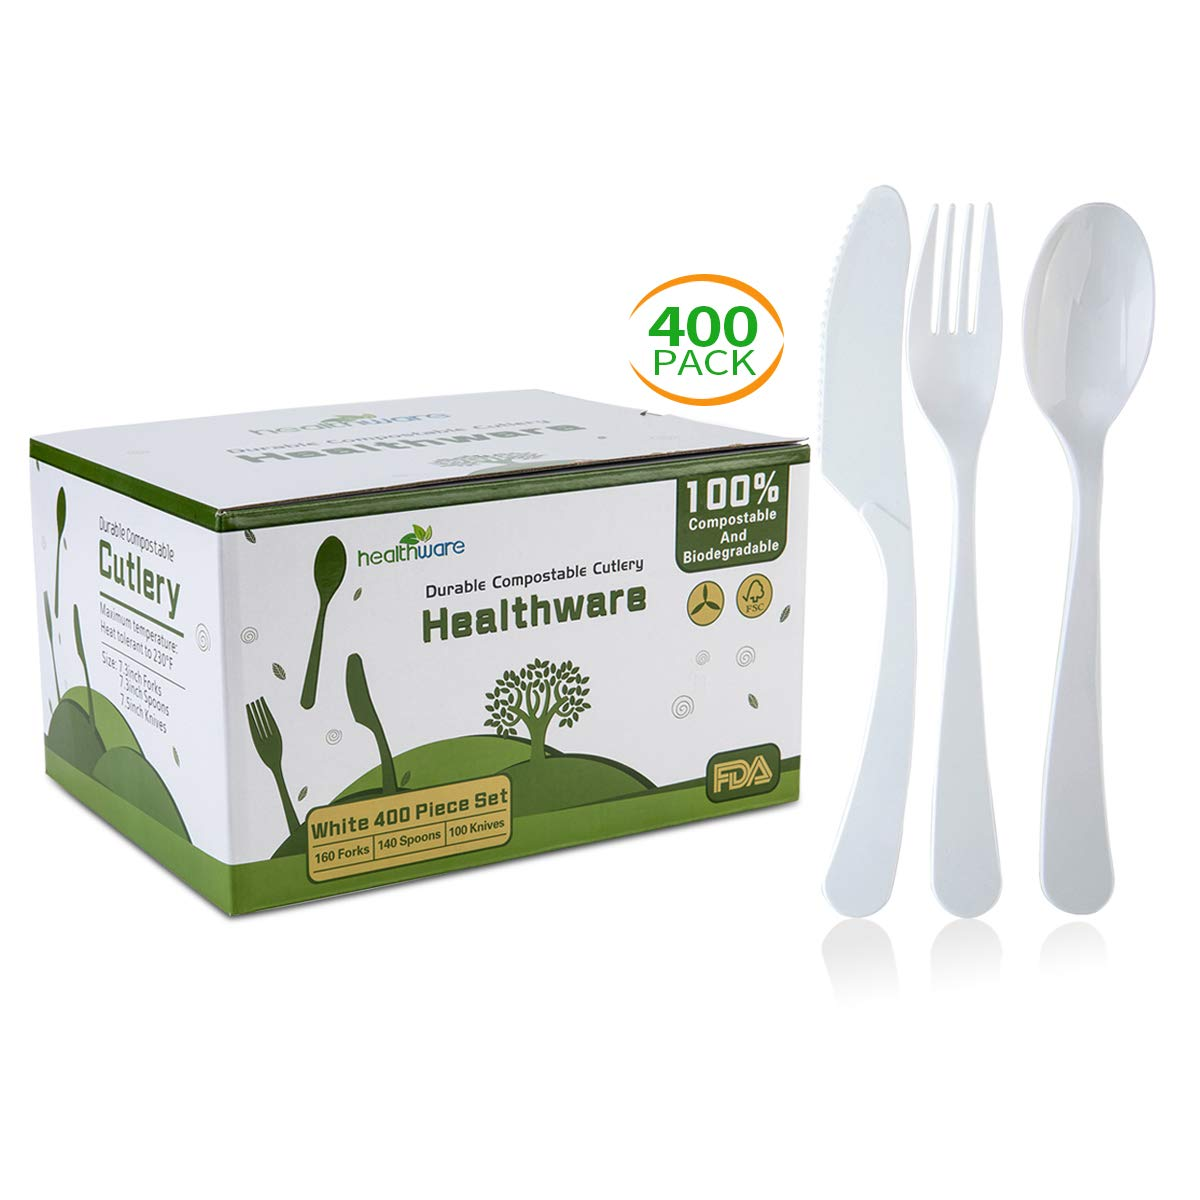 Biodegradable Compostable Forks Spoons Knives, 100% CPLA 400 Pack 7.3 Inch White Disposable Biodegradable Cutlery Set, 8.3 Pounds Heavyweight Eco-friendly (160 Forks,140 Spoons and 100 Knives) by healthware